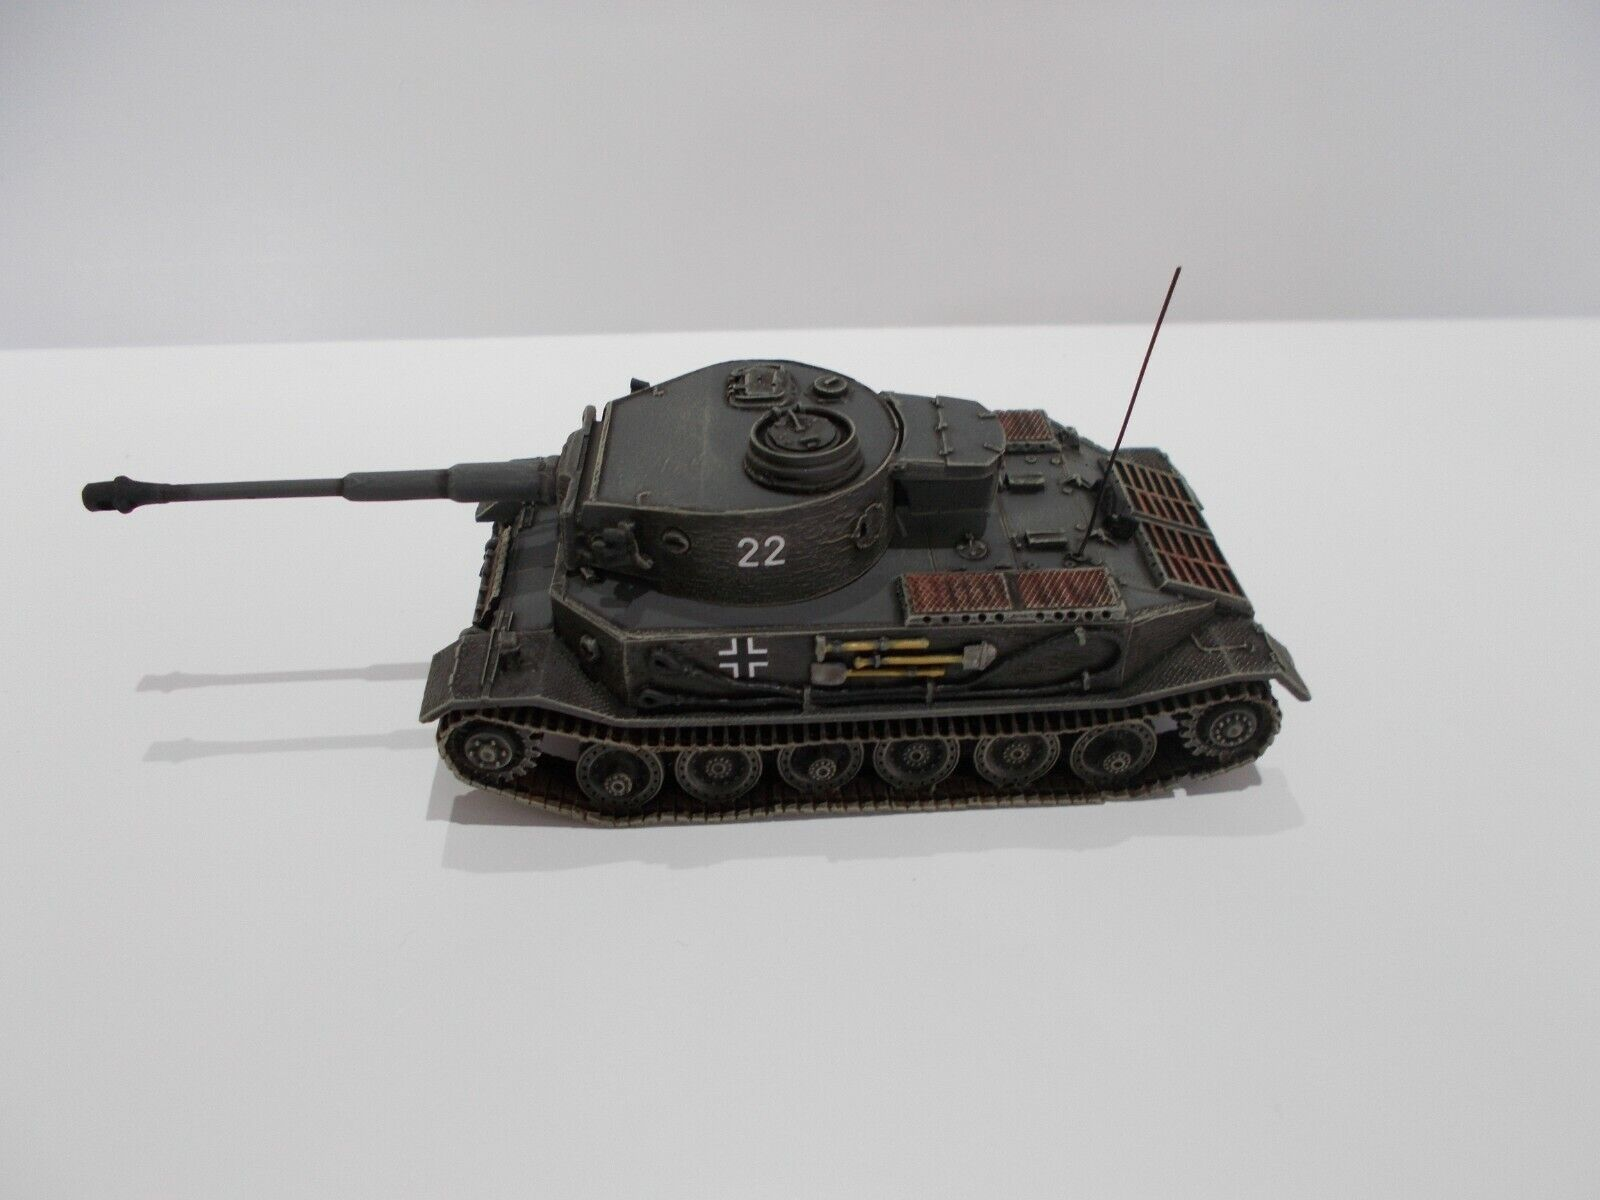 1 76 WW2 BUILT & PAINTED GERMAN VK 45 01 45 01 45 01 (P) HEAVY TANK